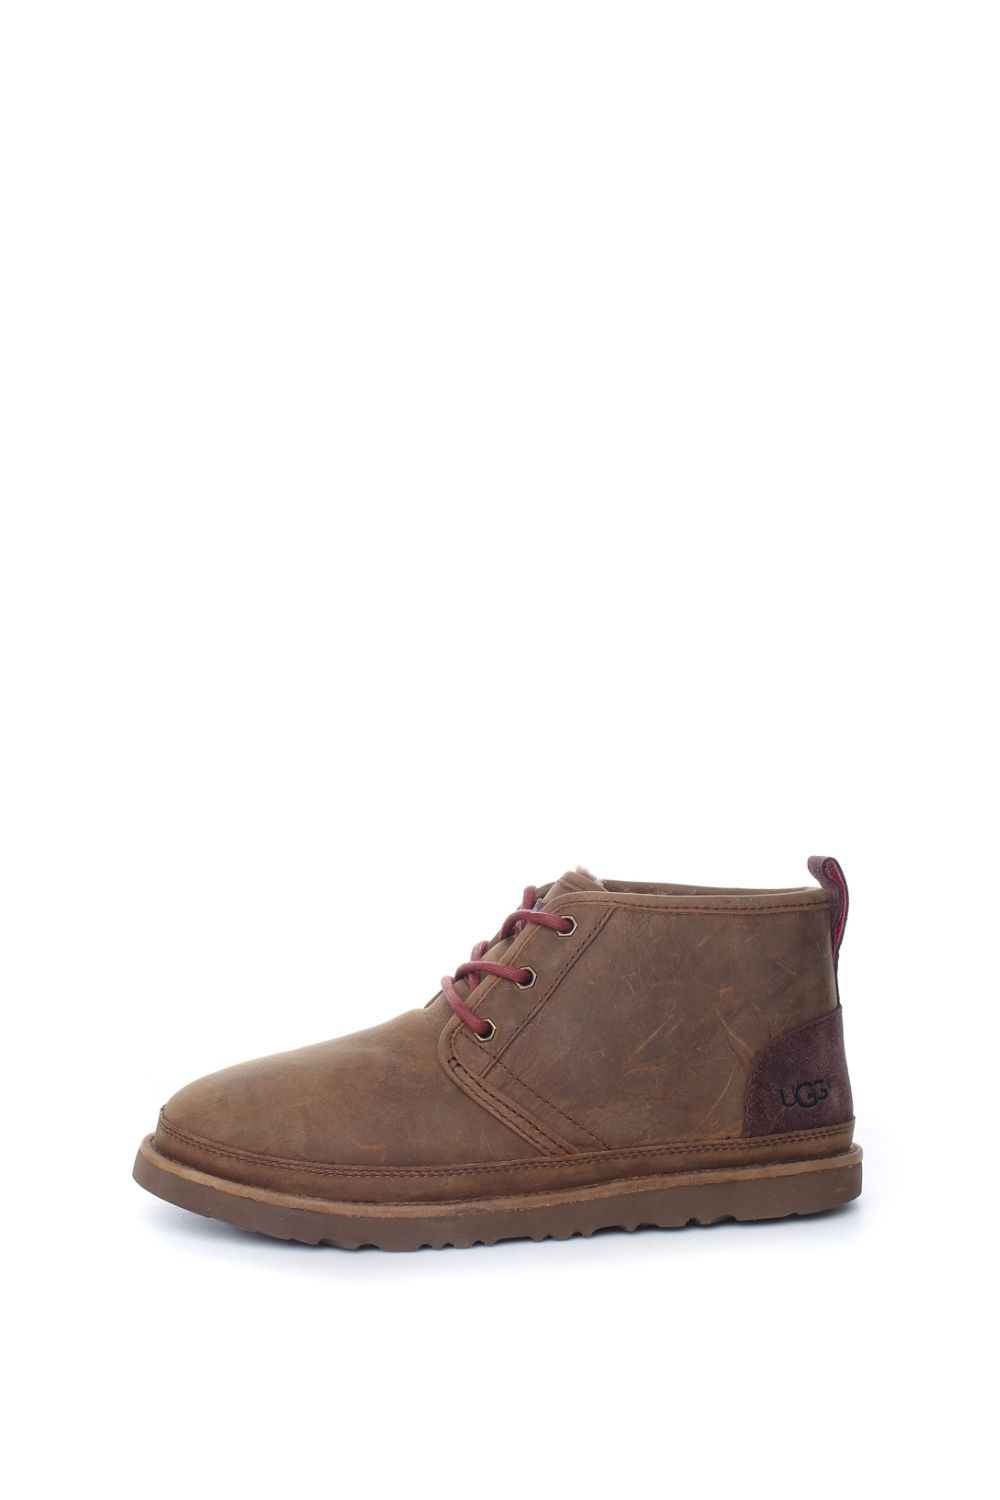 7fdbc61bd9c -15% Collective Online UGG – Ανδρικά μποτάκια NEUMEL WATERPROOF UGG  AUSTRALIA καφέ